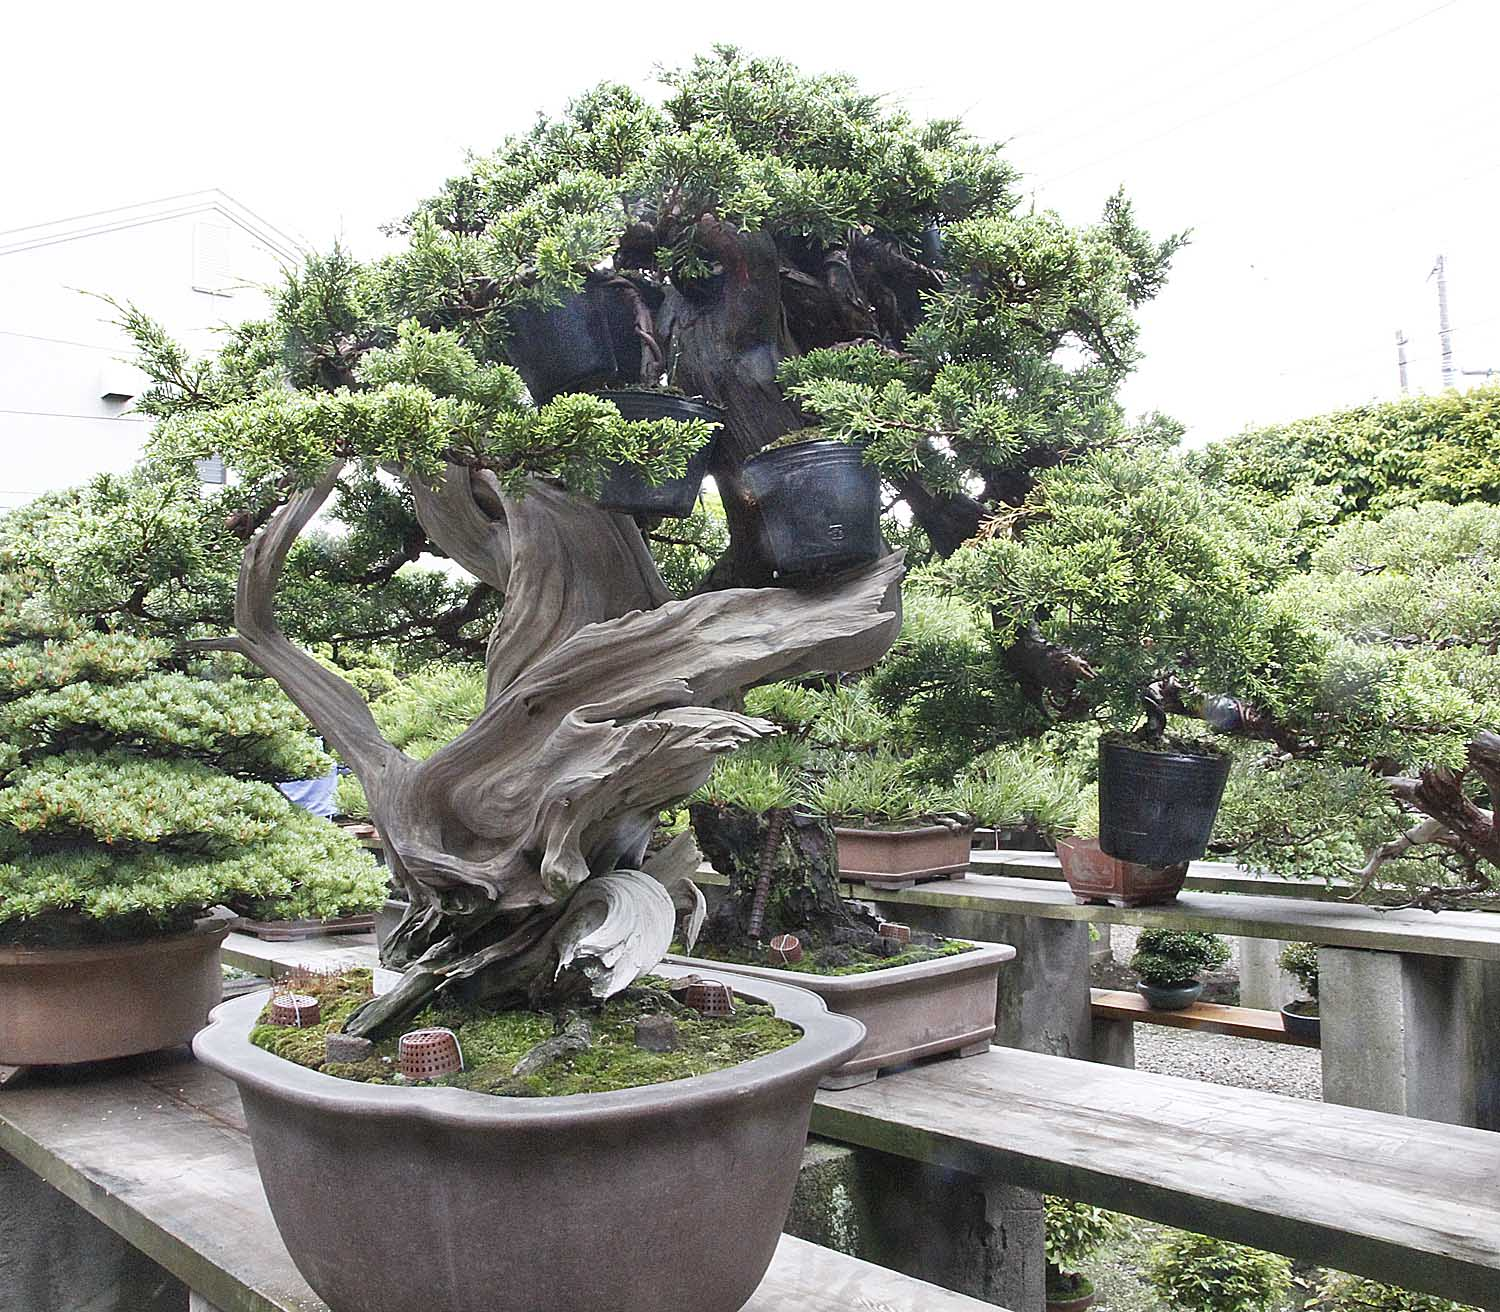 Japan satsuki bonsai tour part 2 valavanis bonsai blog - Bonsai zimmerpflanze ...